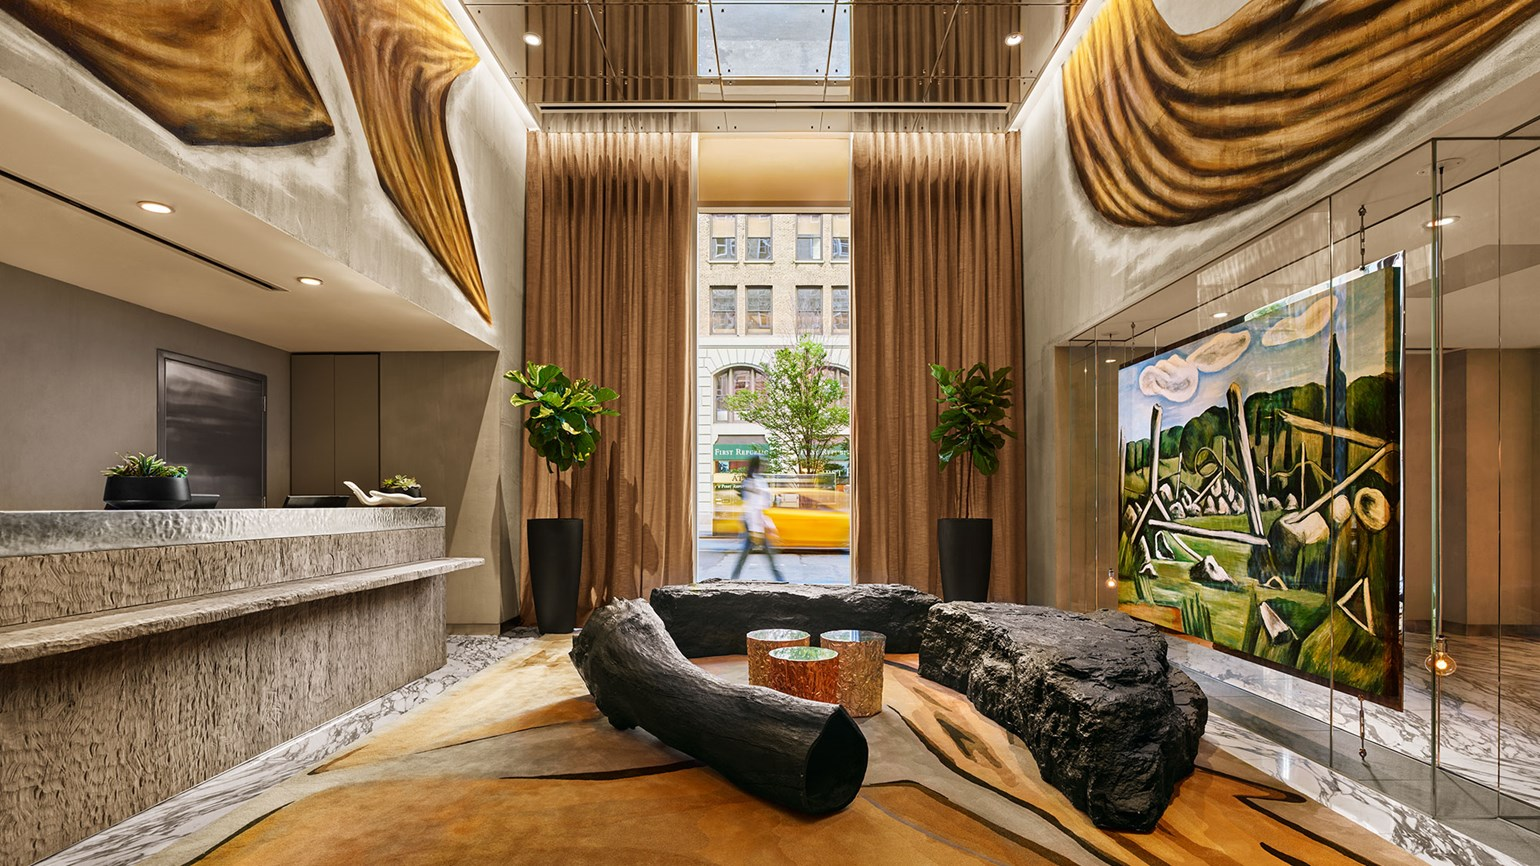 Hotel reopenings: New York's Mondrian Park Avenue restarts operations